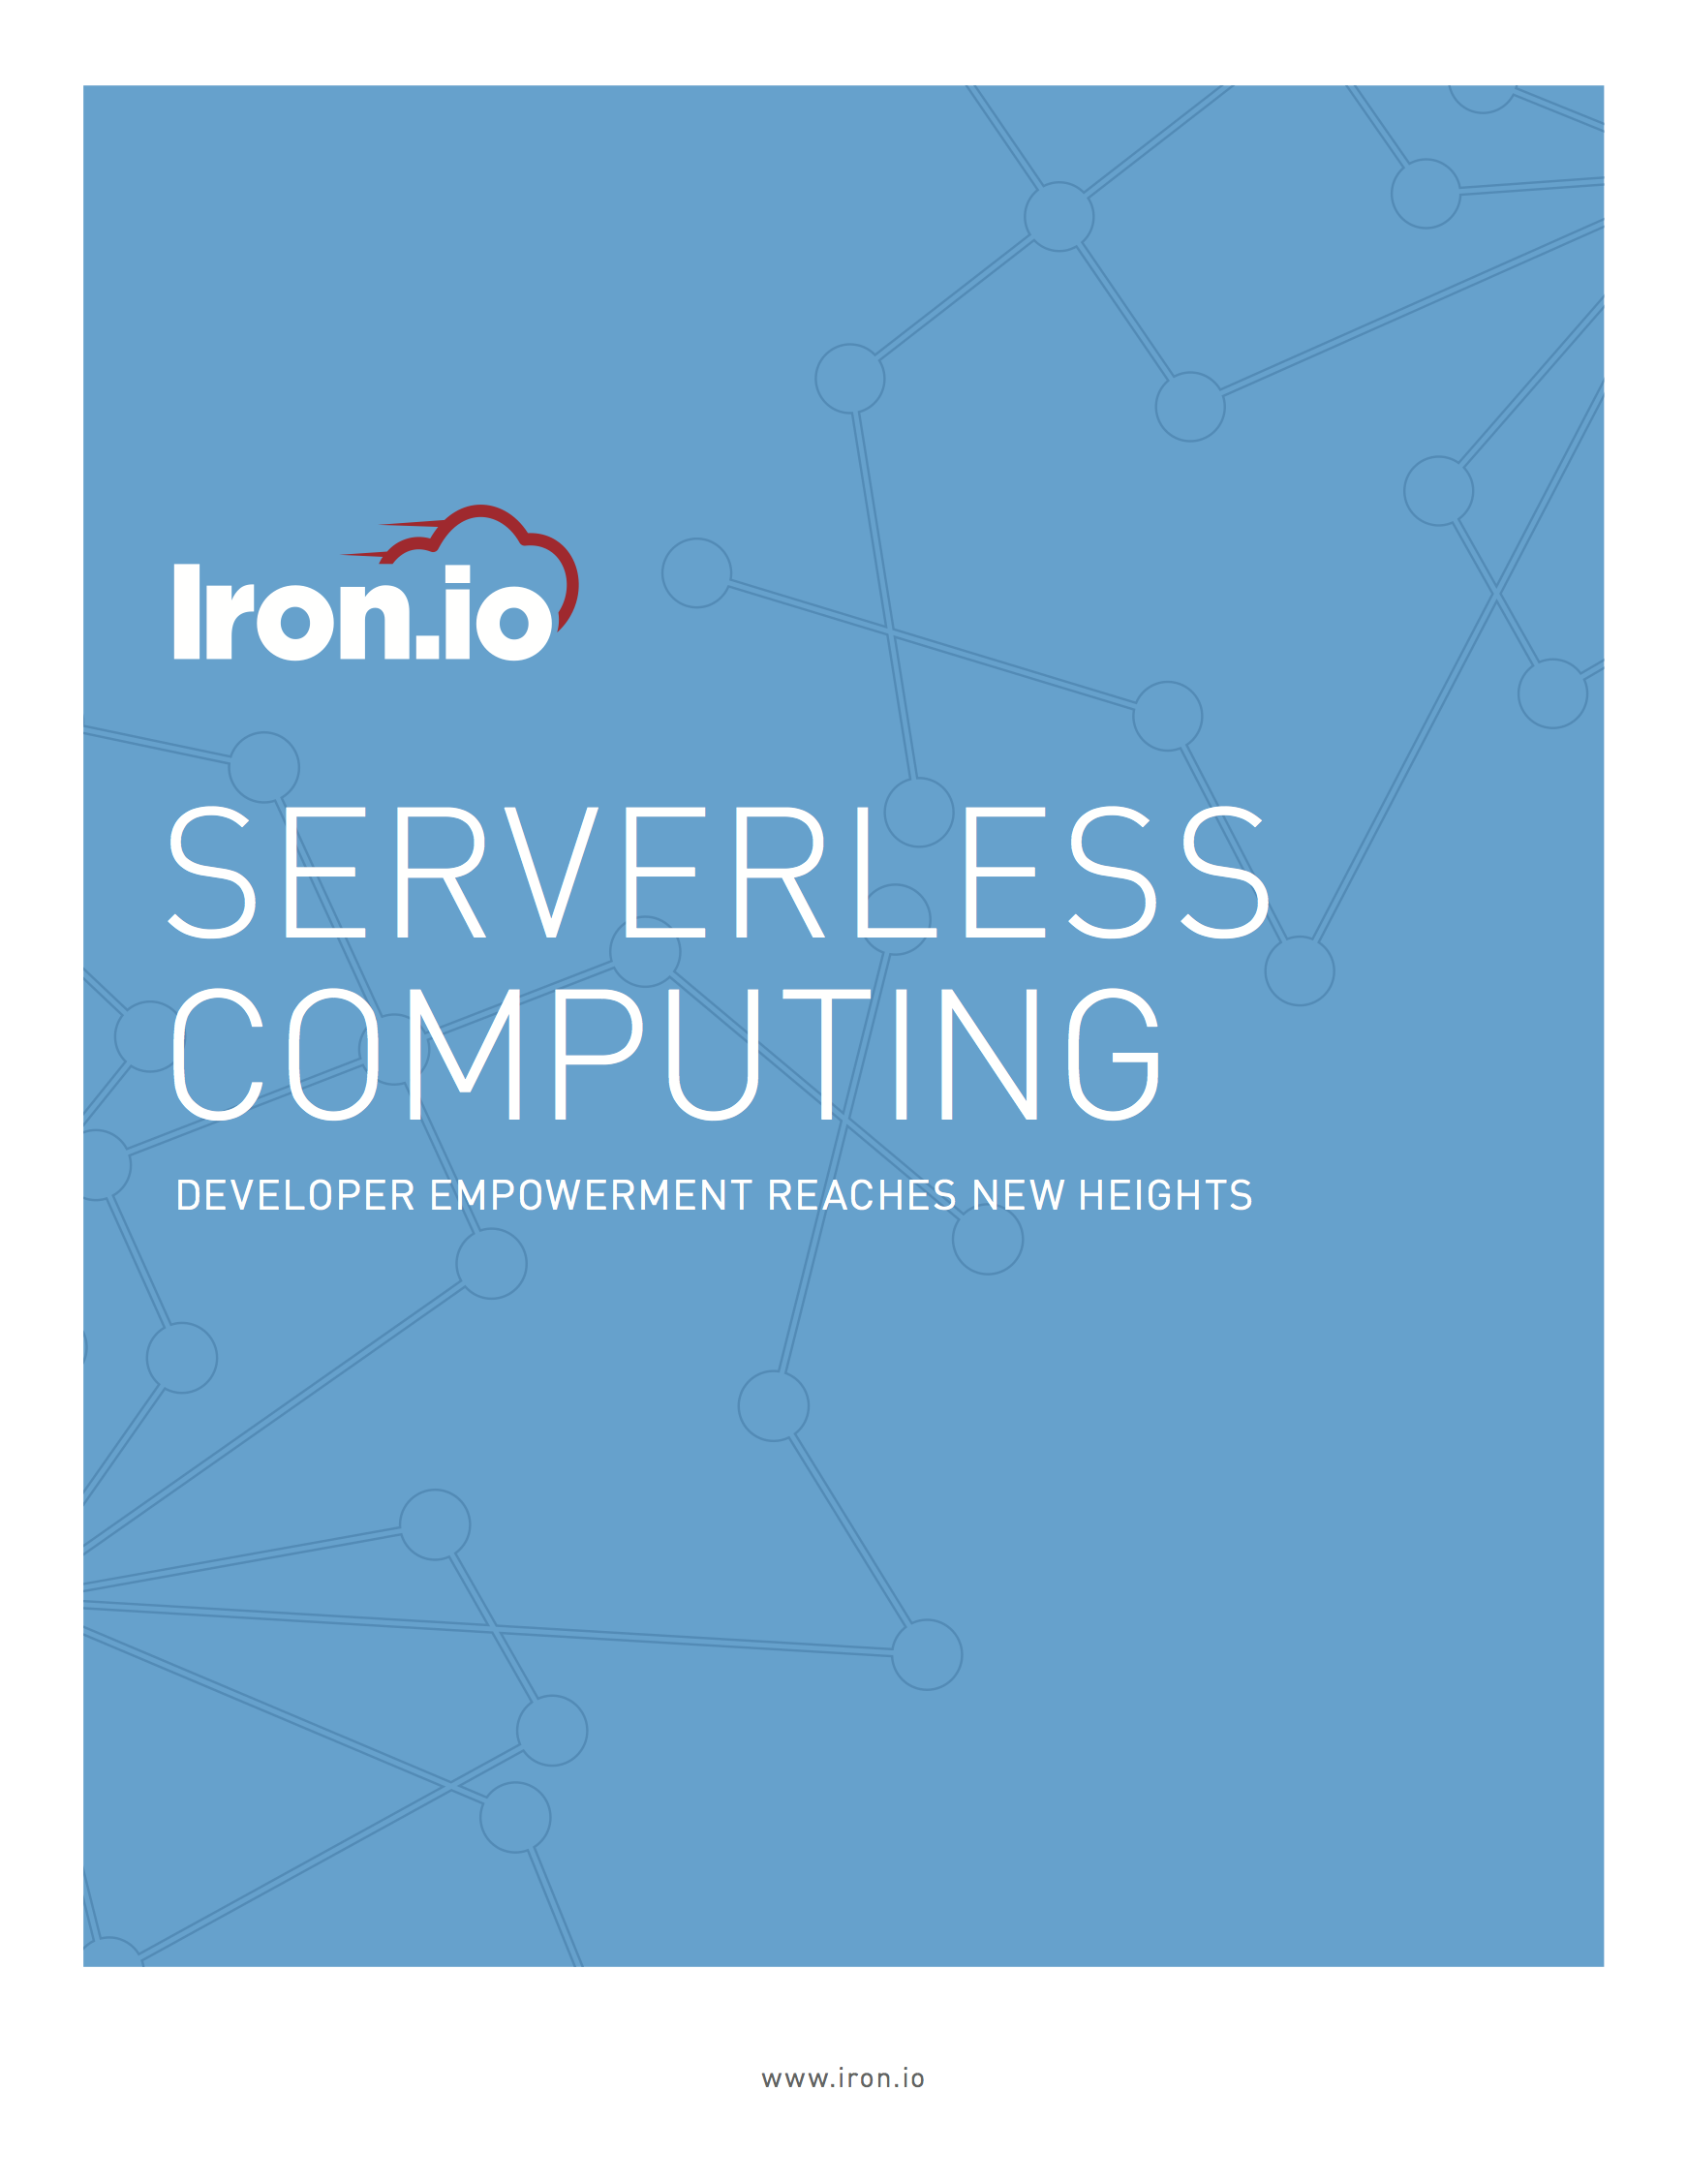 Iron.io Serverless